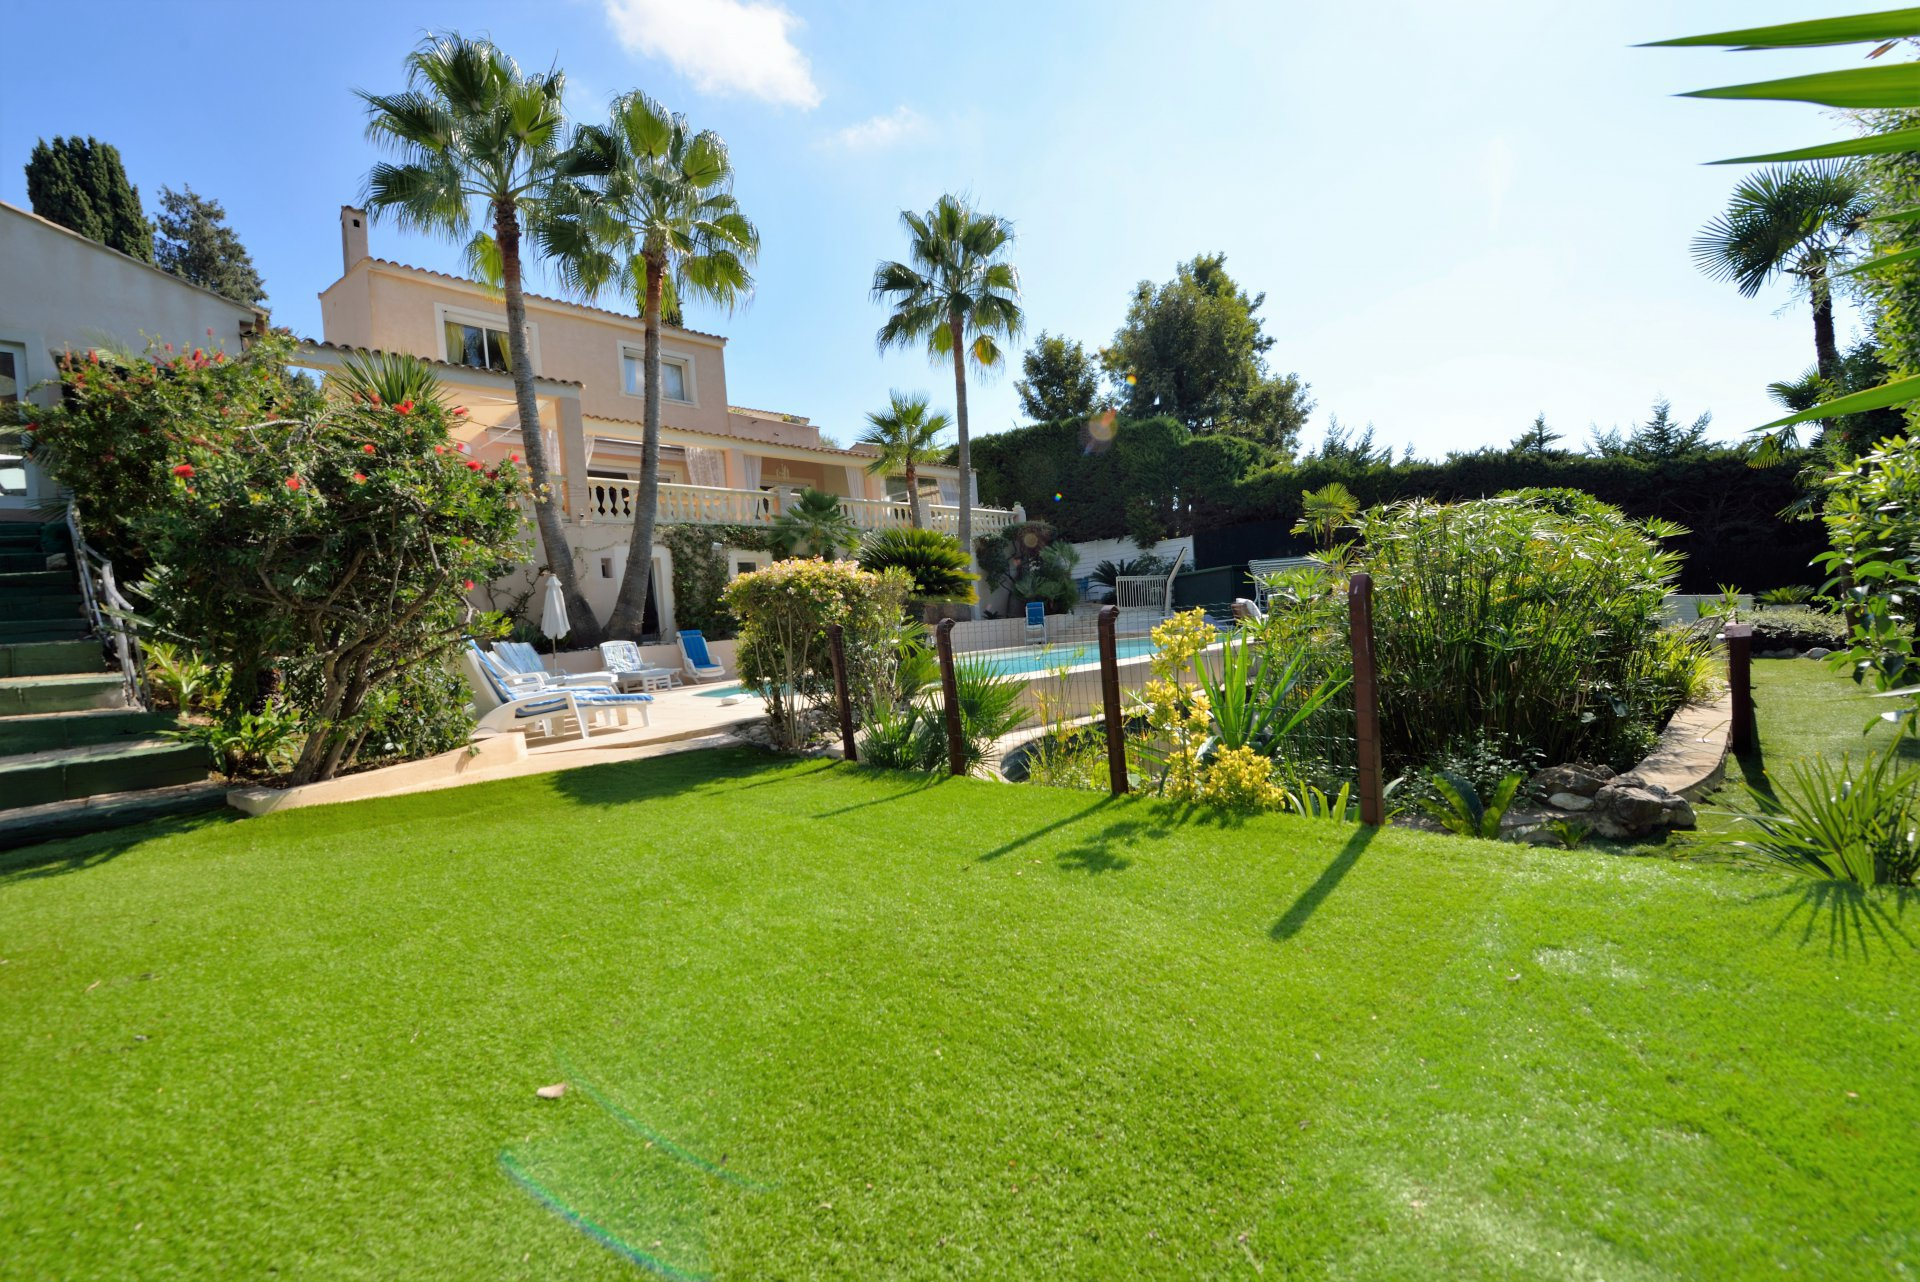 ANTIBES VILLA 5***** for yearly rental